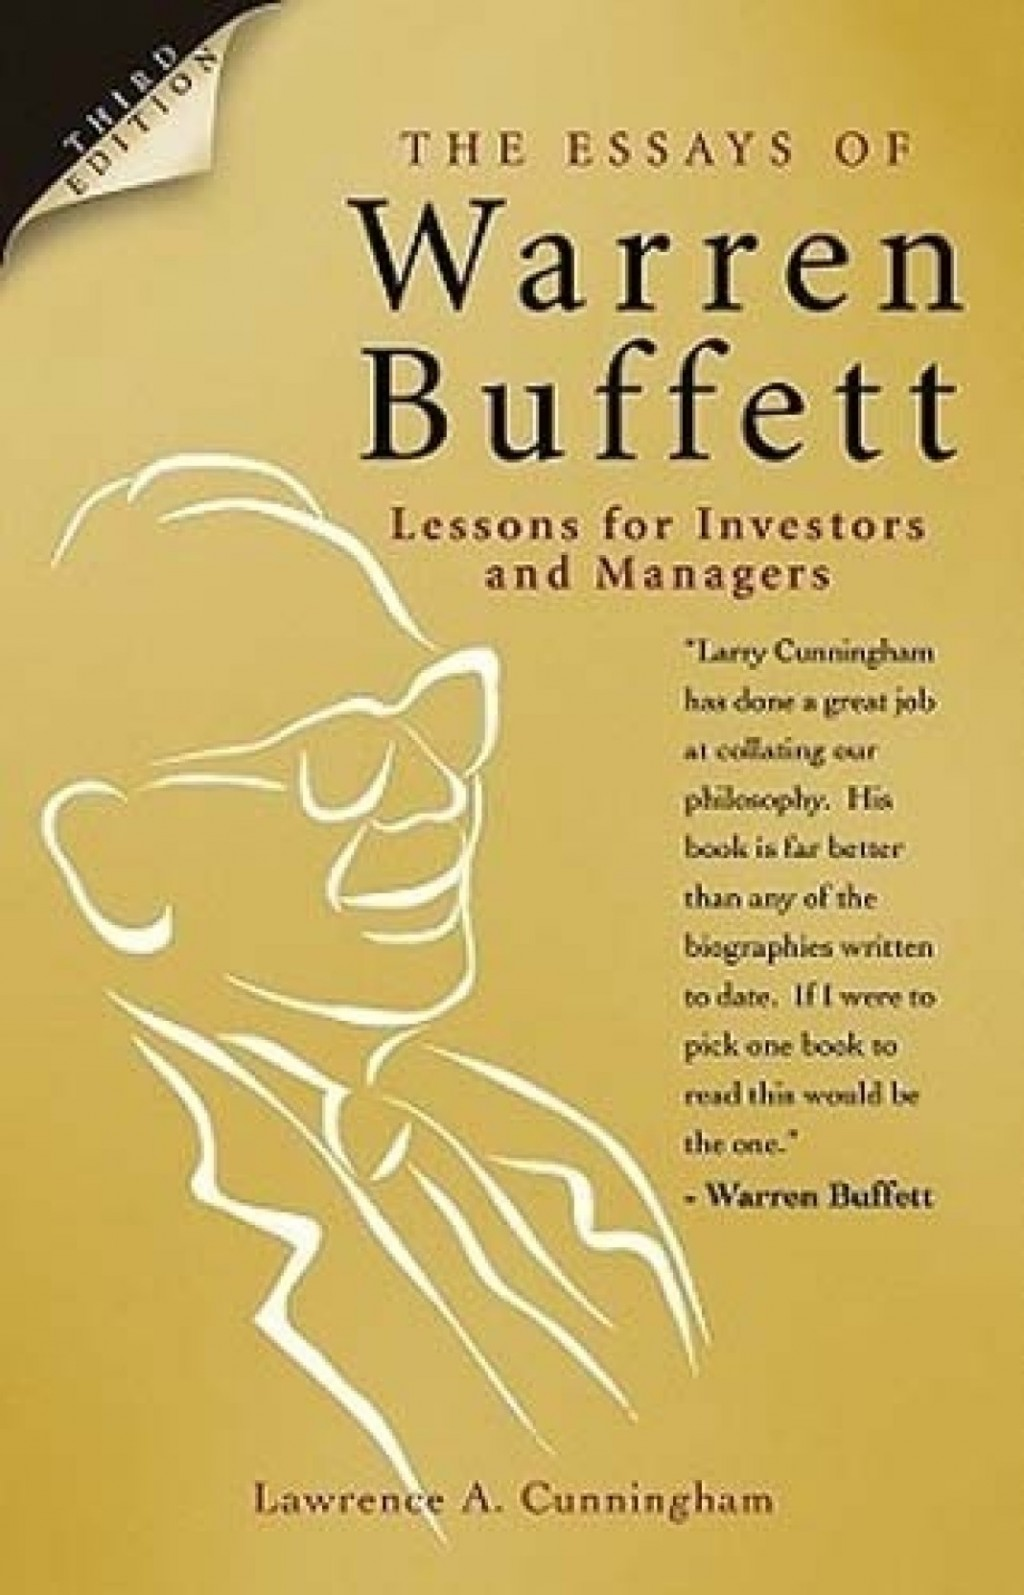 016 Essays Of Warren Buffett Essay Example The Lessons For Investors And Managers Original Top 4th Edition Pdf Free Large